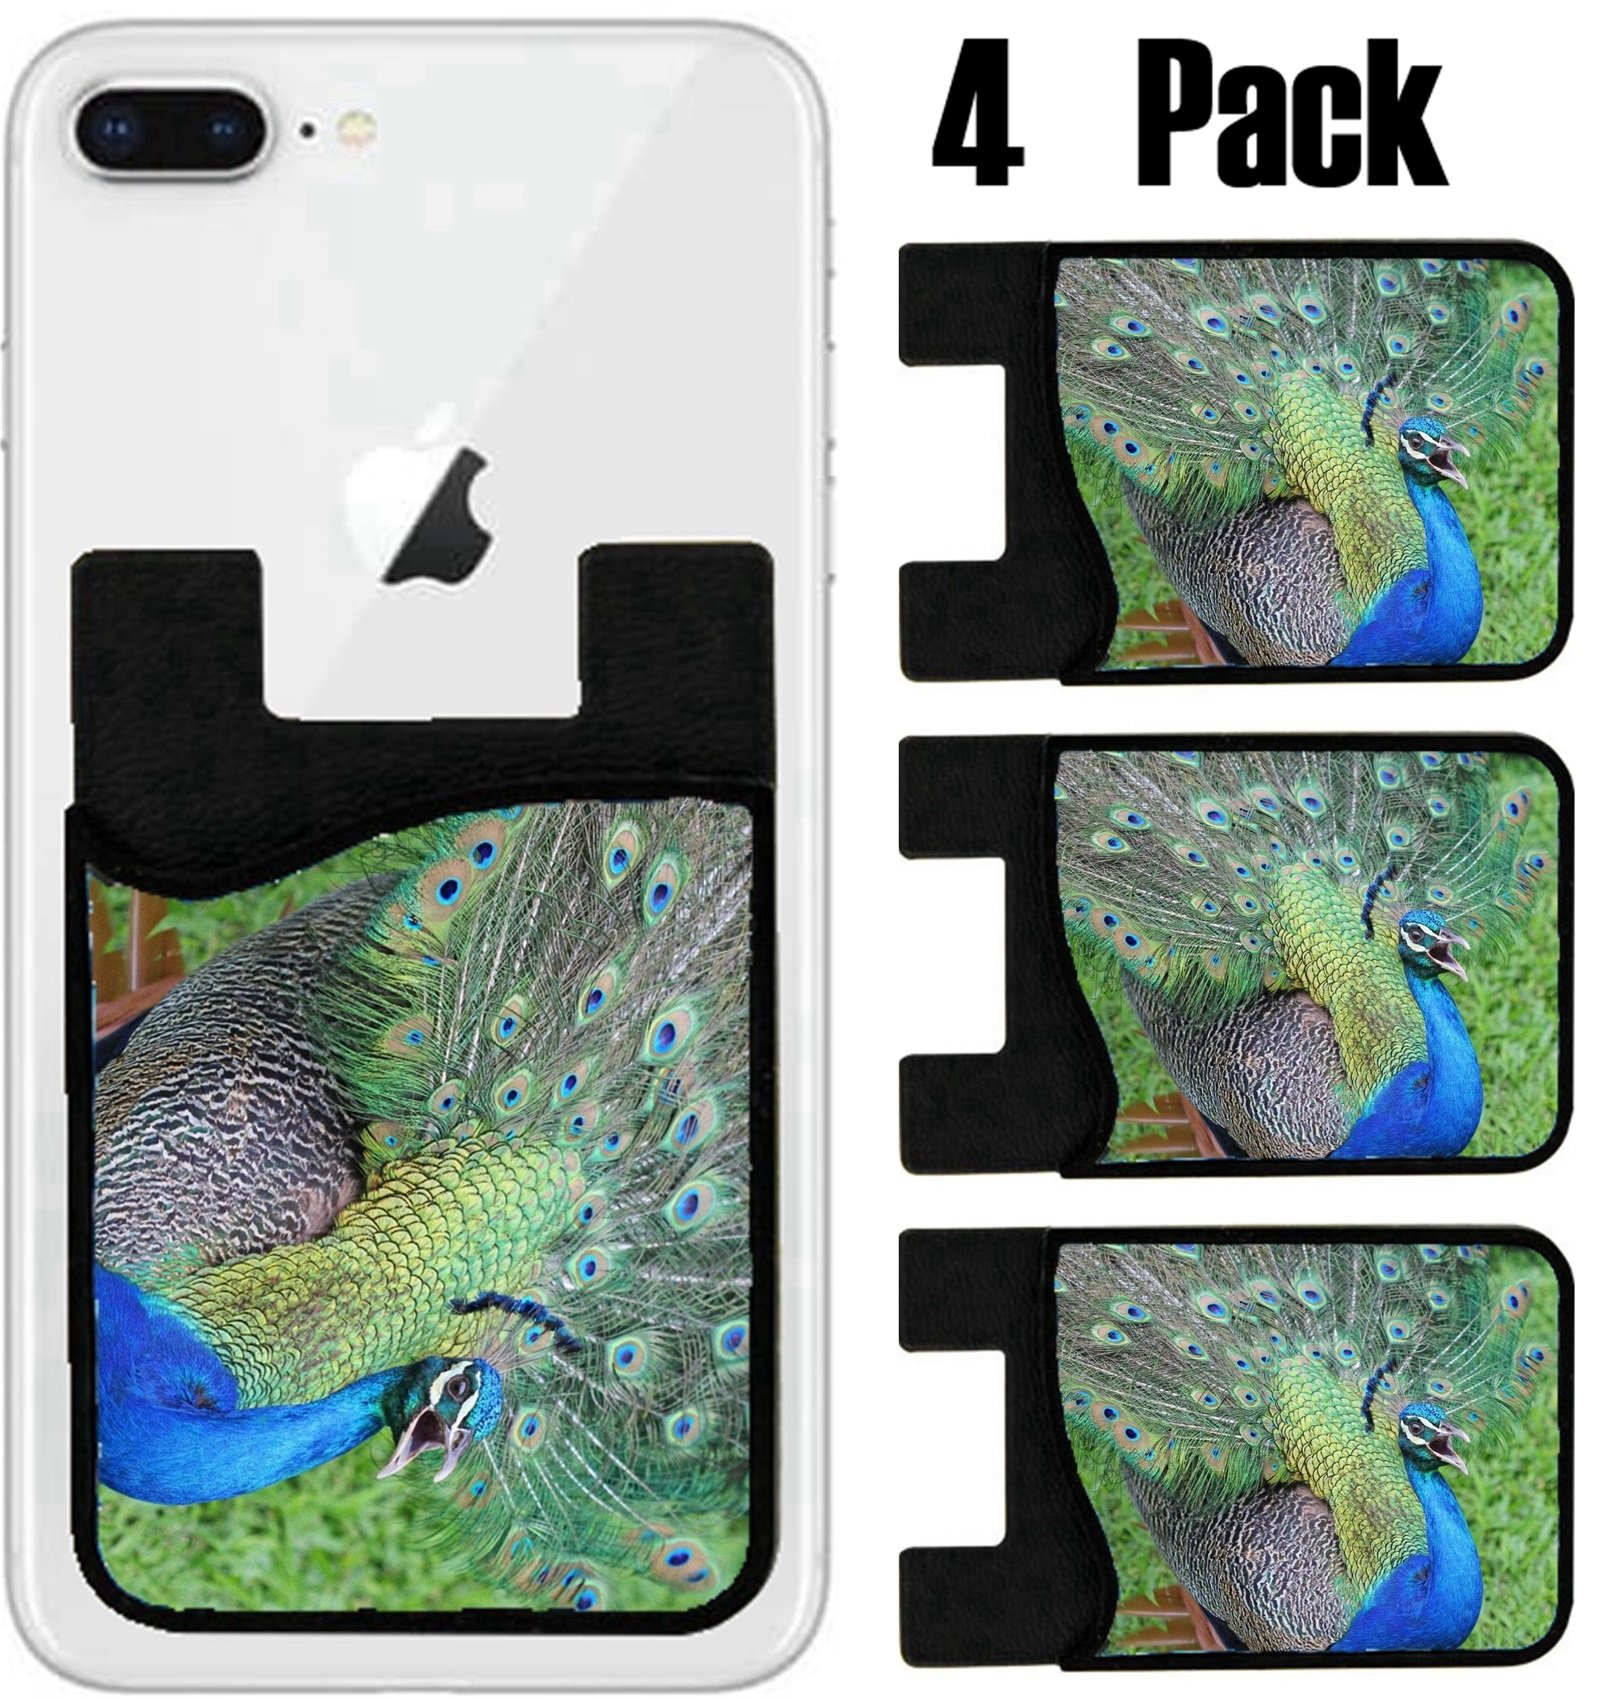 MSD Phone Card holder, sleeve/wallet for iPhone Samsung Android and all smartphones with removable microfiber screen cleaner Silicone card Caddy(4 Pack) IMAGE ID 32223535 Peacock opening its tail Jama